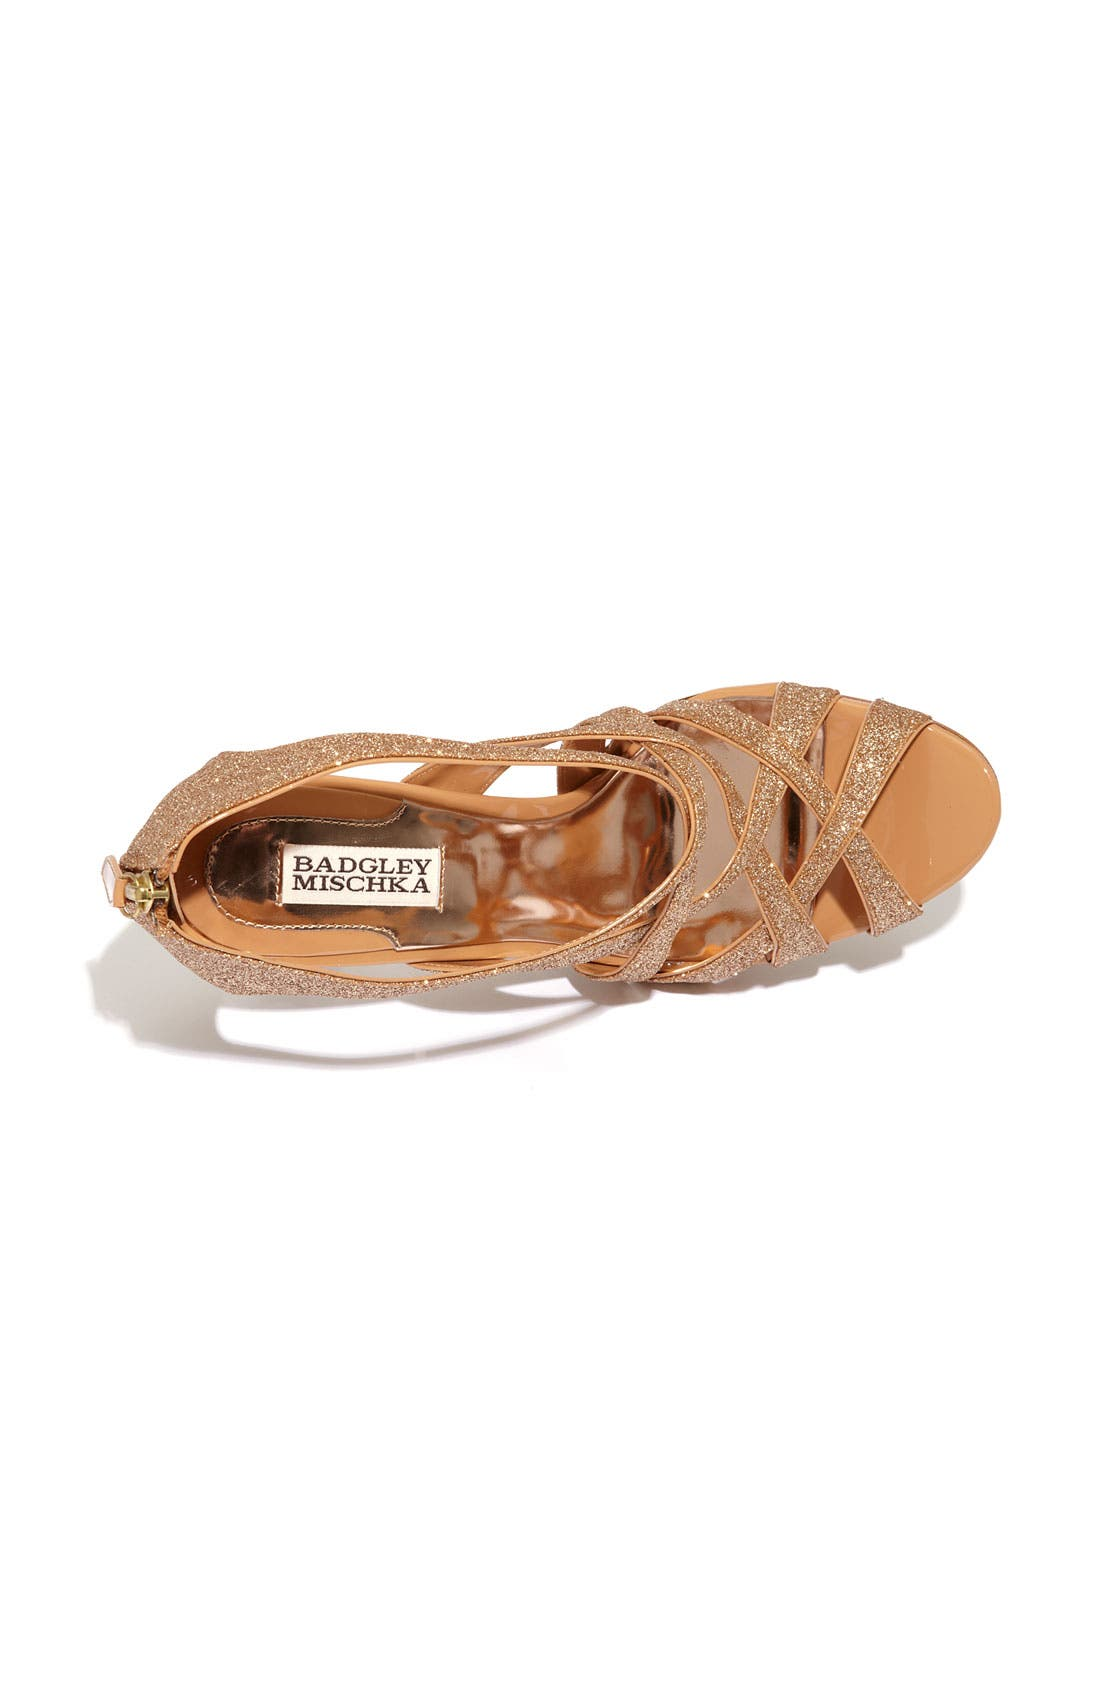 Alternate Image 3  - Badgley Mischka 'Junebug' Sandal